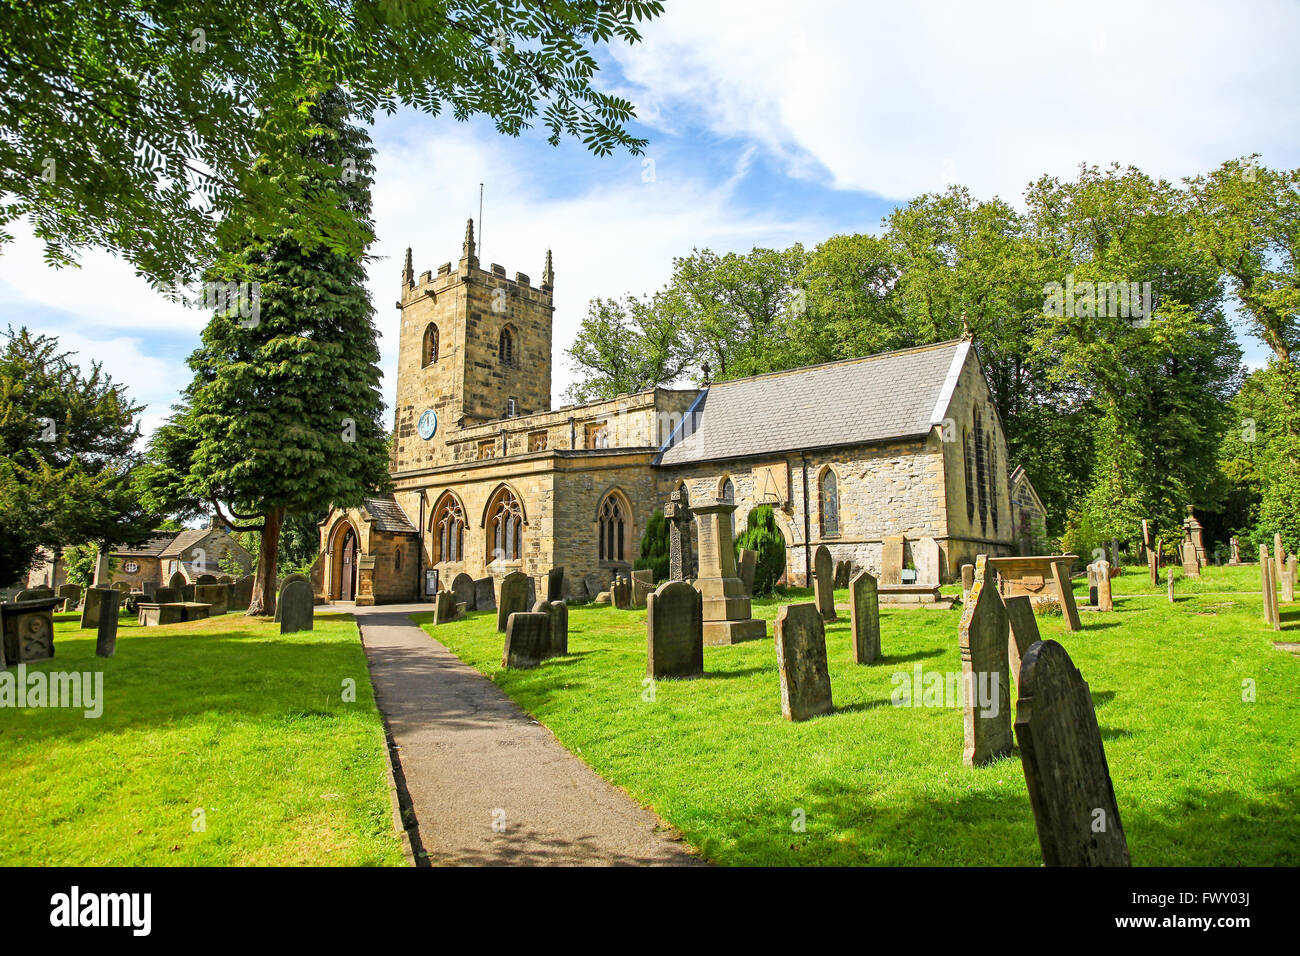 St Lawrence's parish Church Eyam Derbyshire England UK - Stock Image